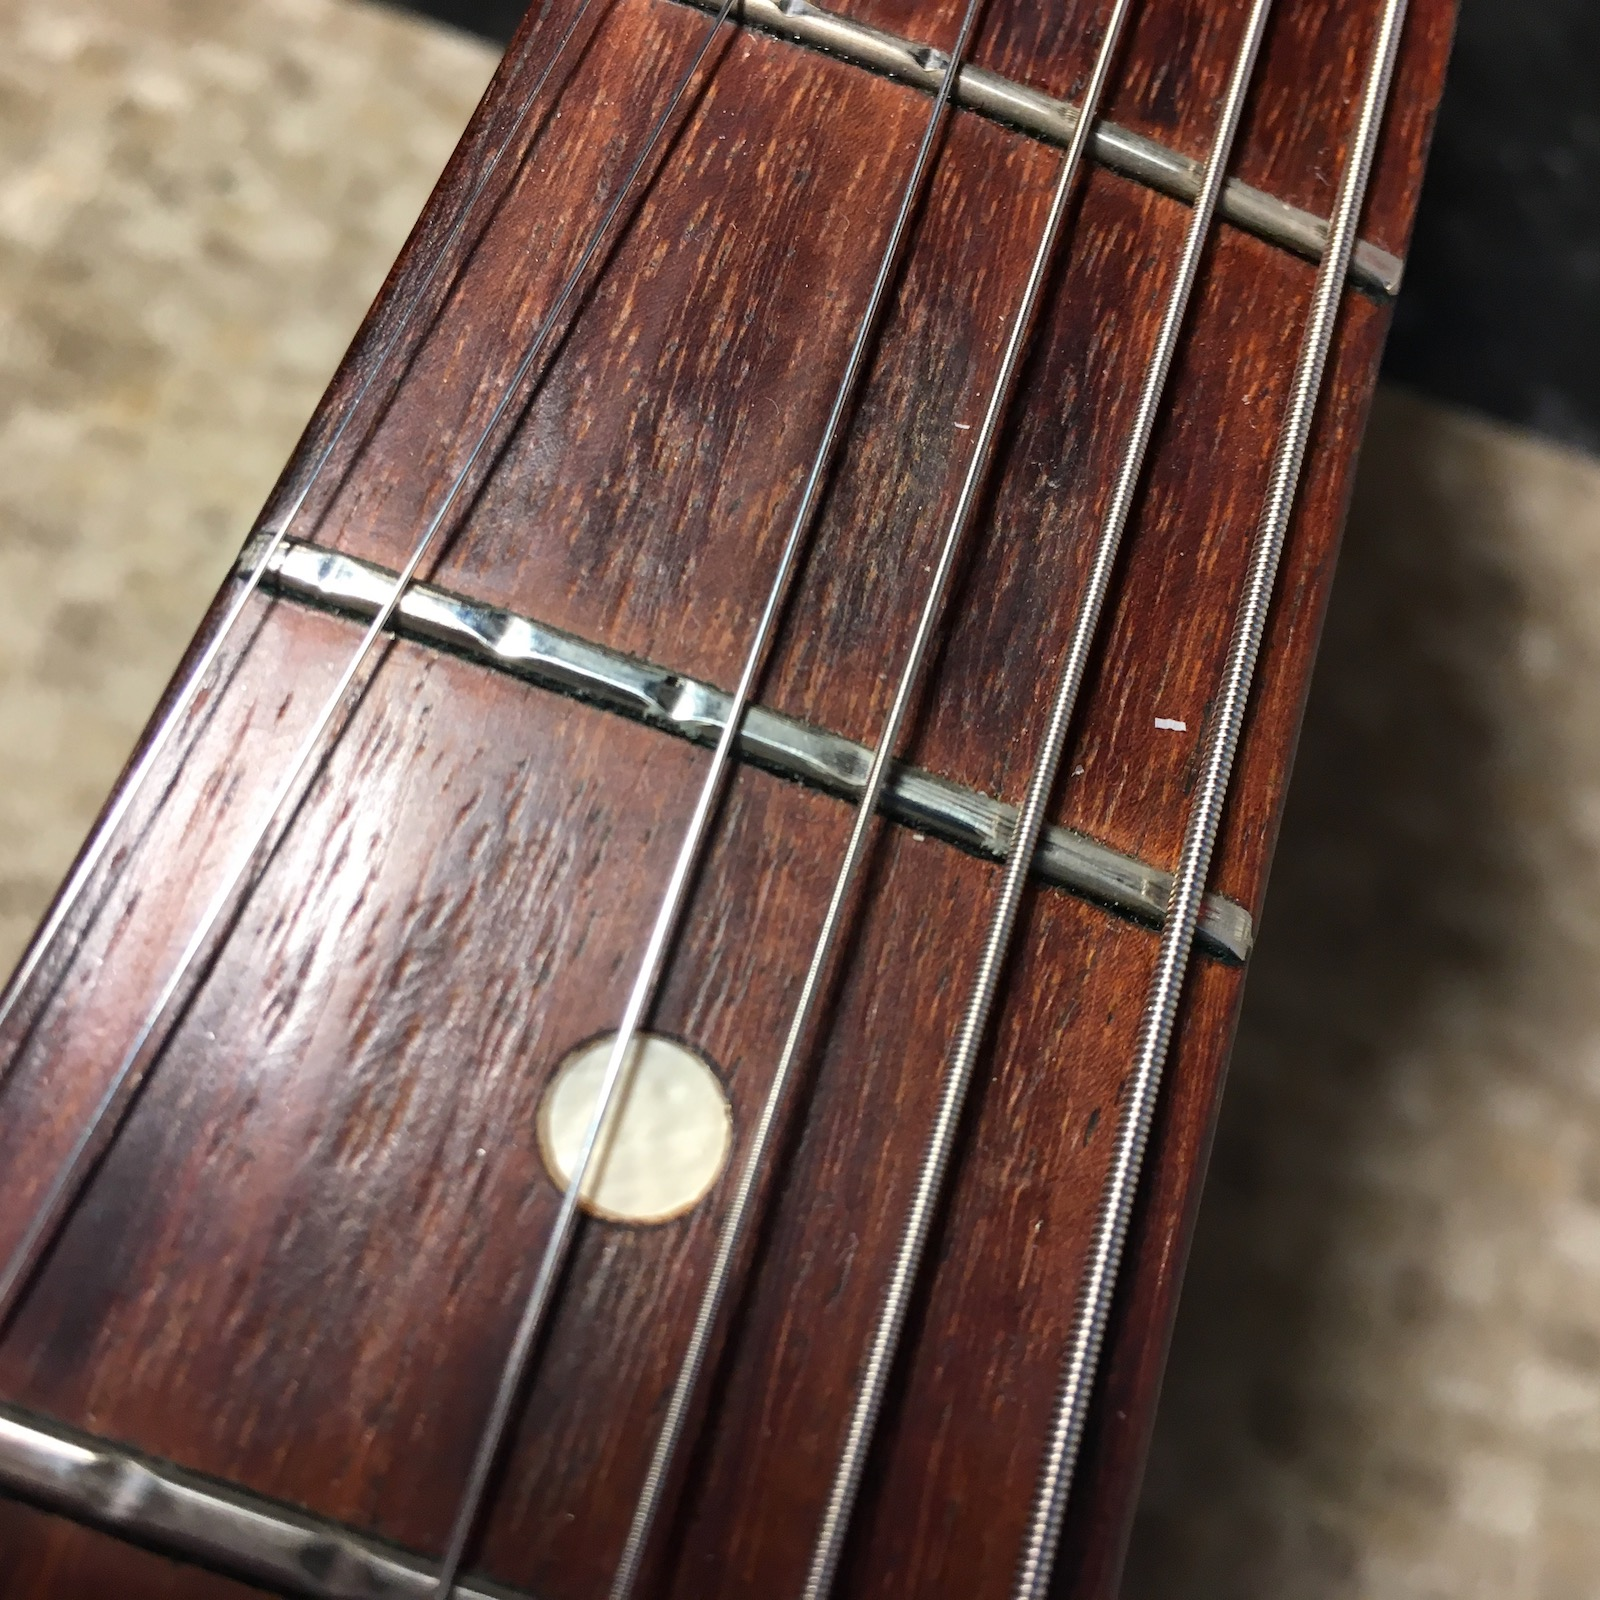 Push your strings to the side and check for fret wear